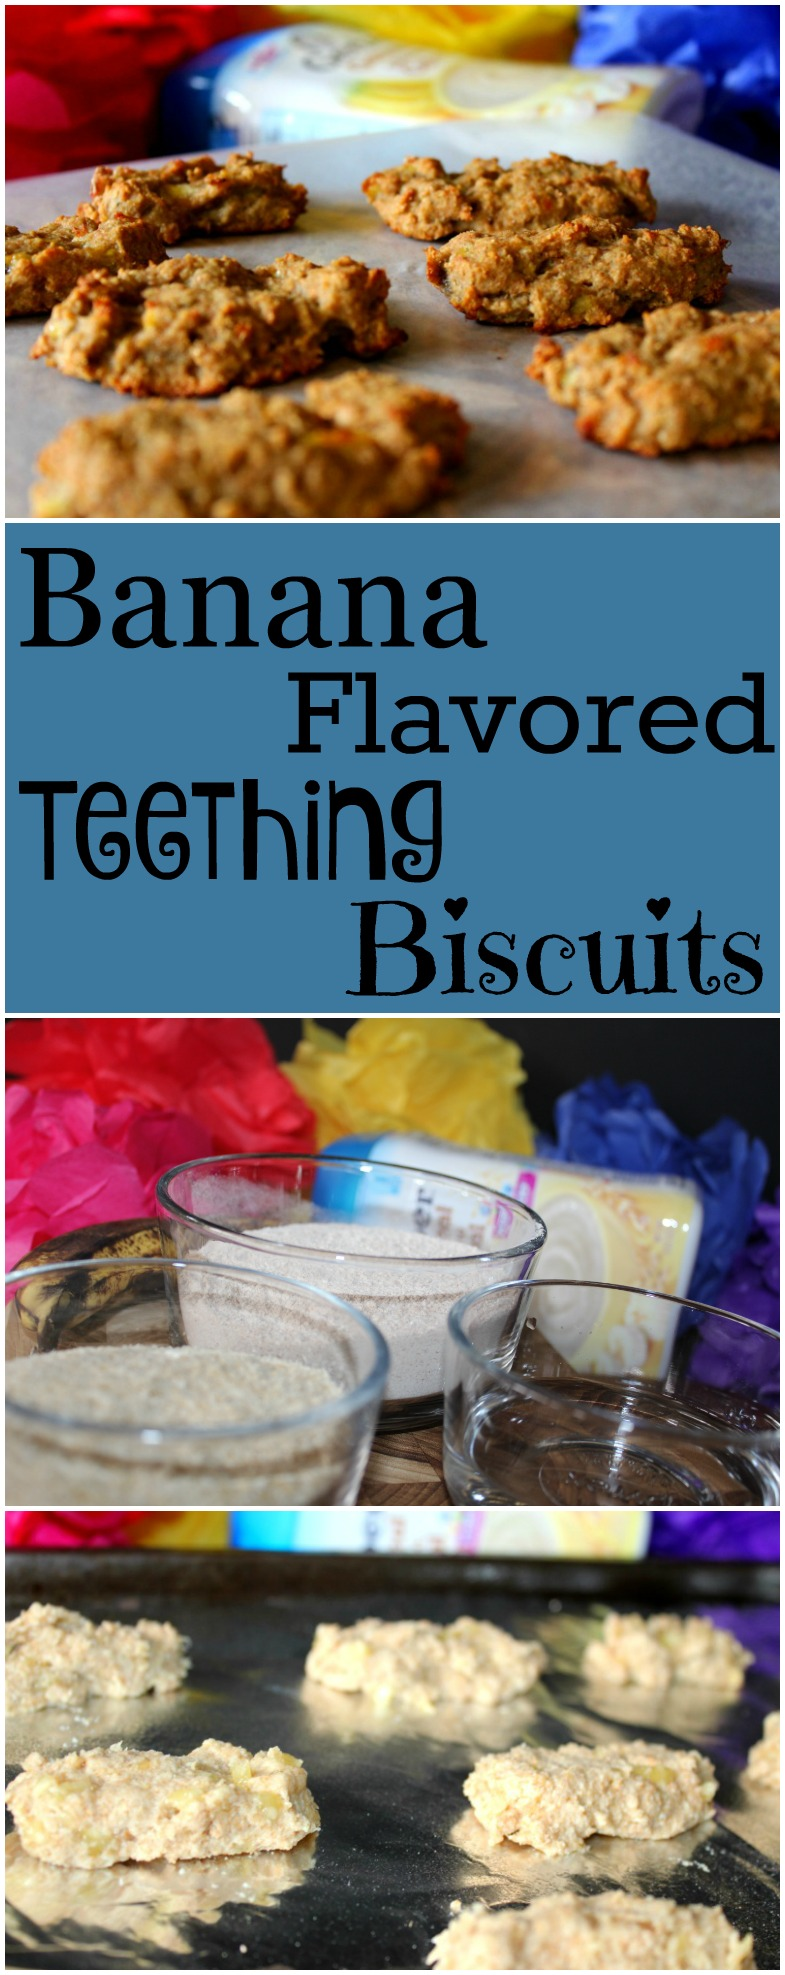 Banana Flavored Teething Biscuits Made with Gerber Cereal